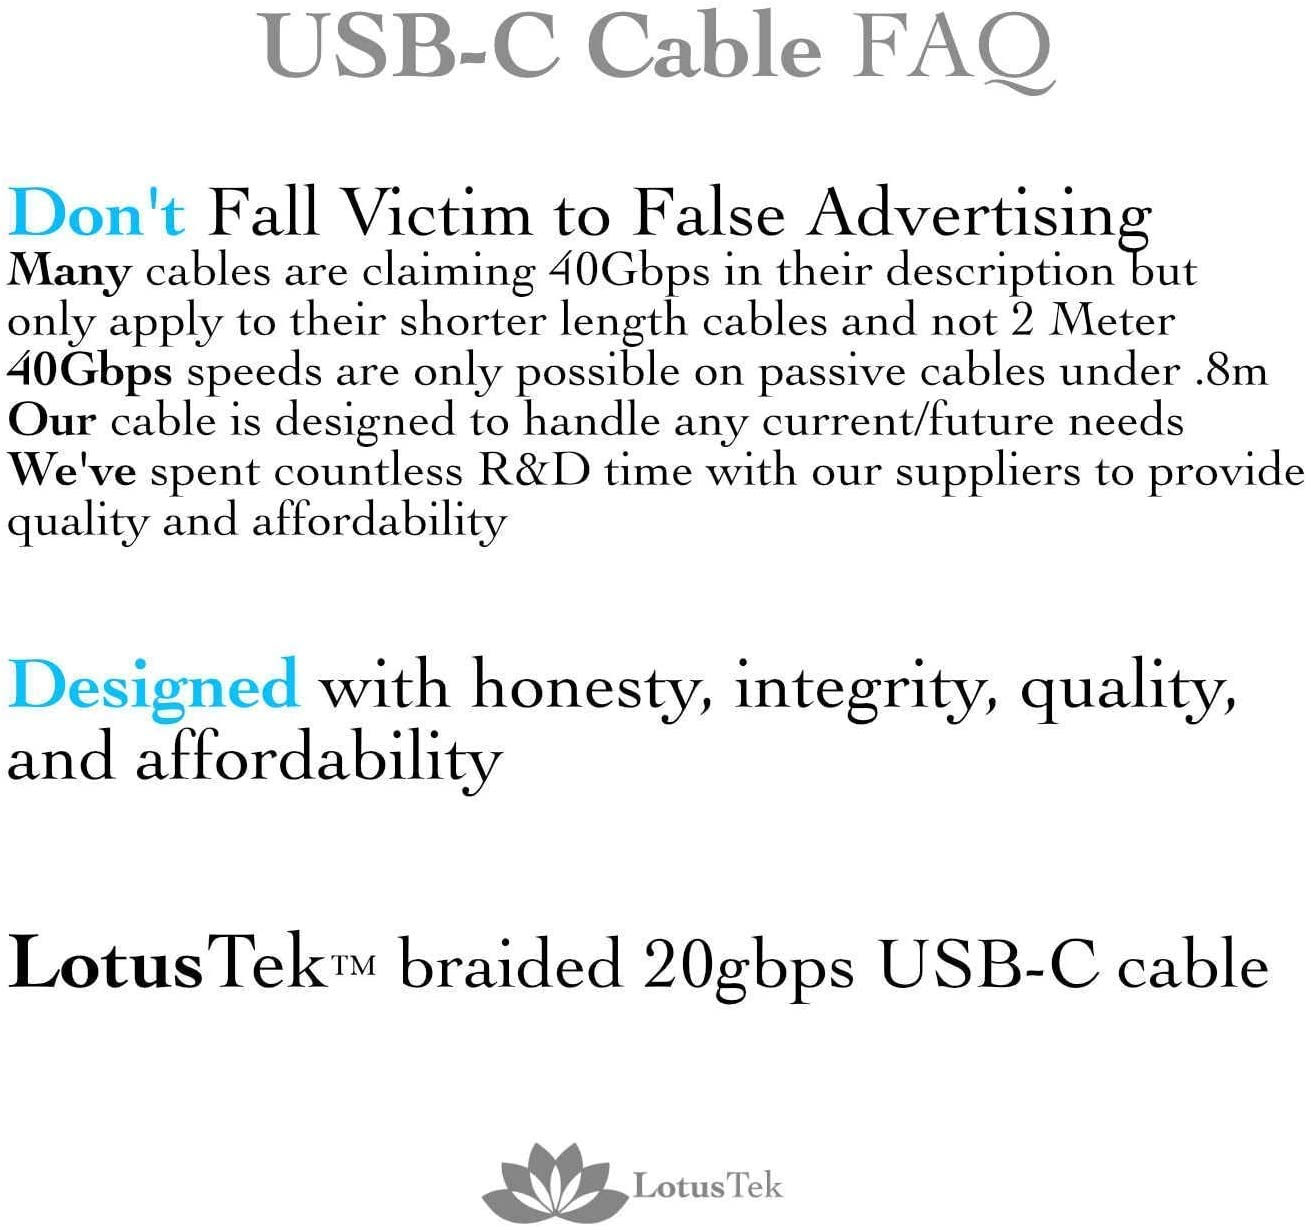 LotusTek   USB-C Cable   Braided USB Super Speed Certified   6.6ft 2M Long   100w Charging   Ipad Pro   Oculus Quest   Thunderbolt 3 & USB 4 Compatible   Fast Charge   USB C